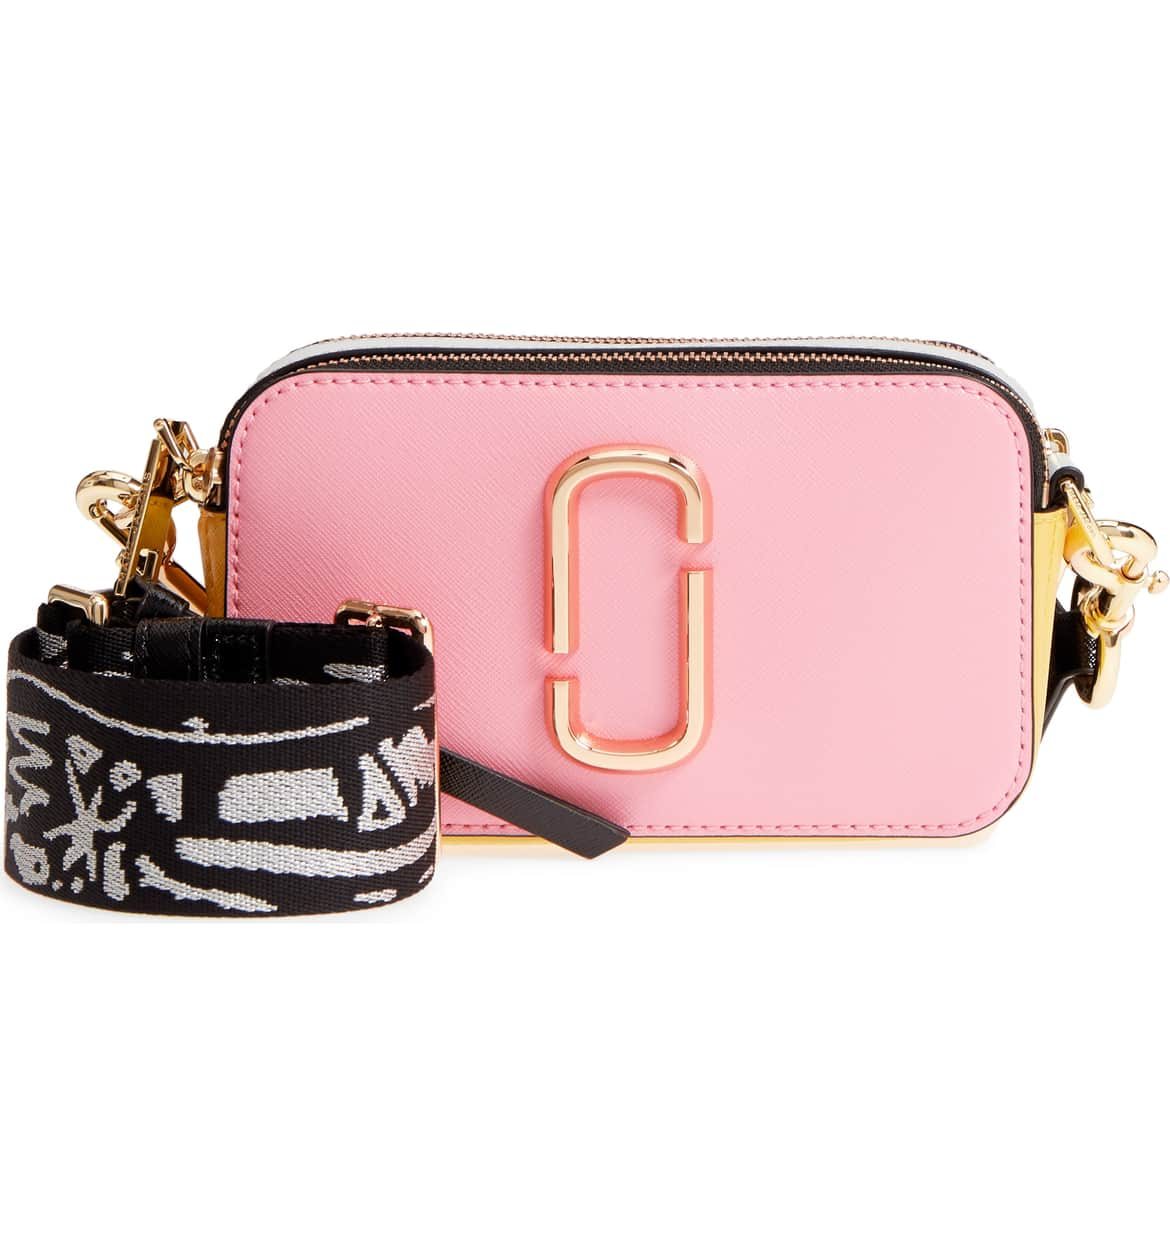 An oversize double-J logo gleams from the side of a chic multicolor bag you can carry as a boxy clutch. CUUUTE!!! $295 (Image: Nordstrom){ }